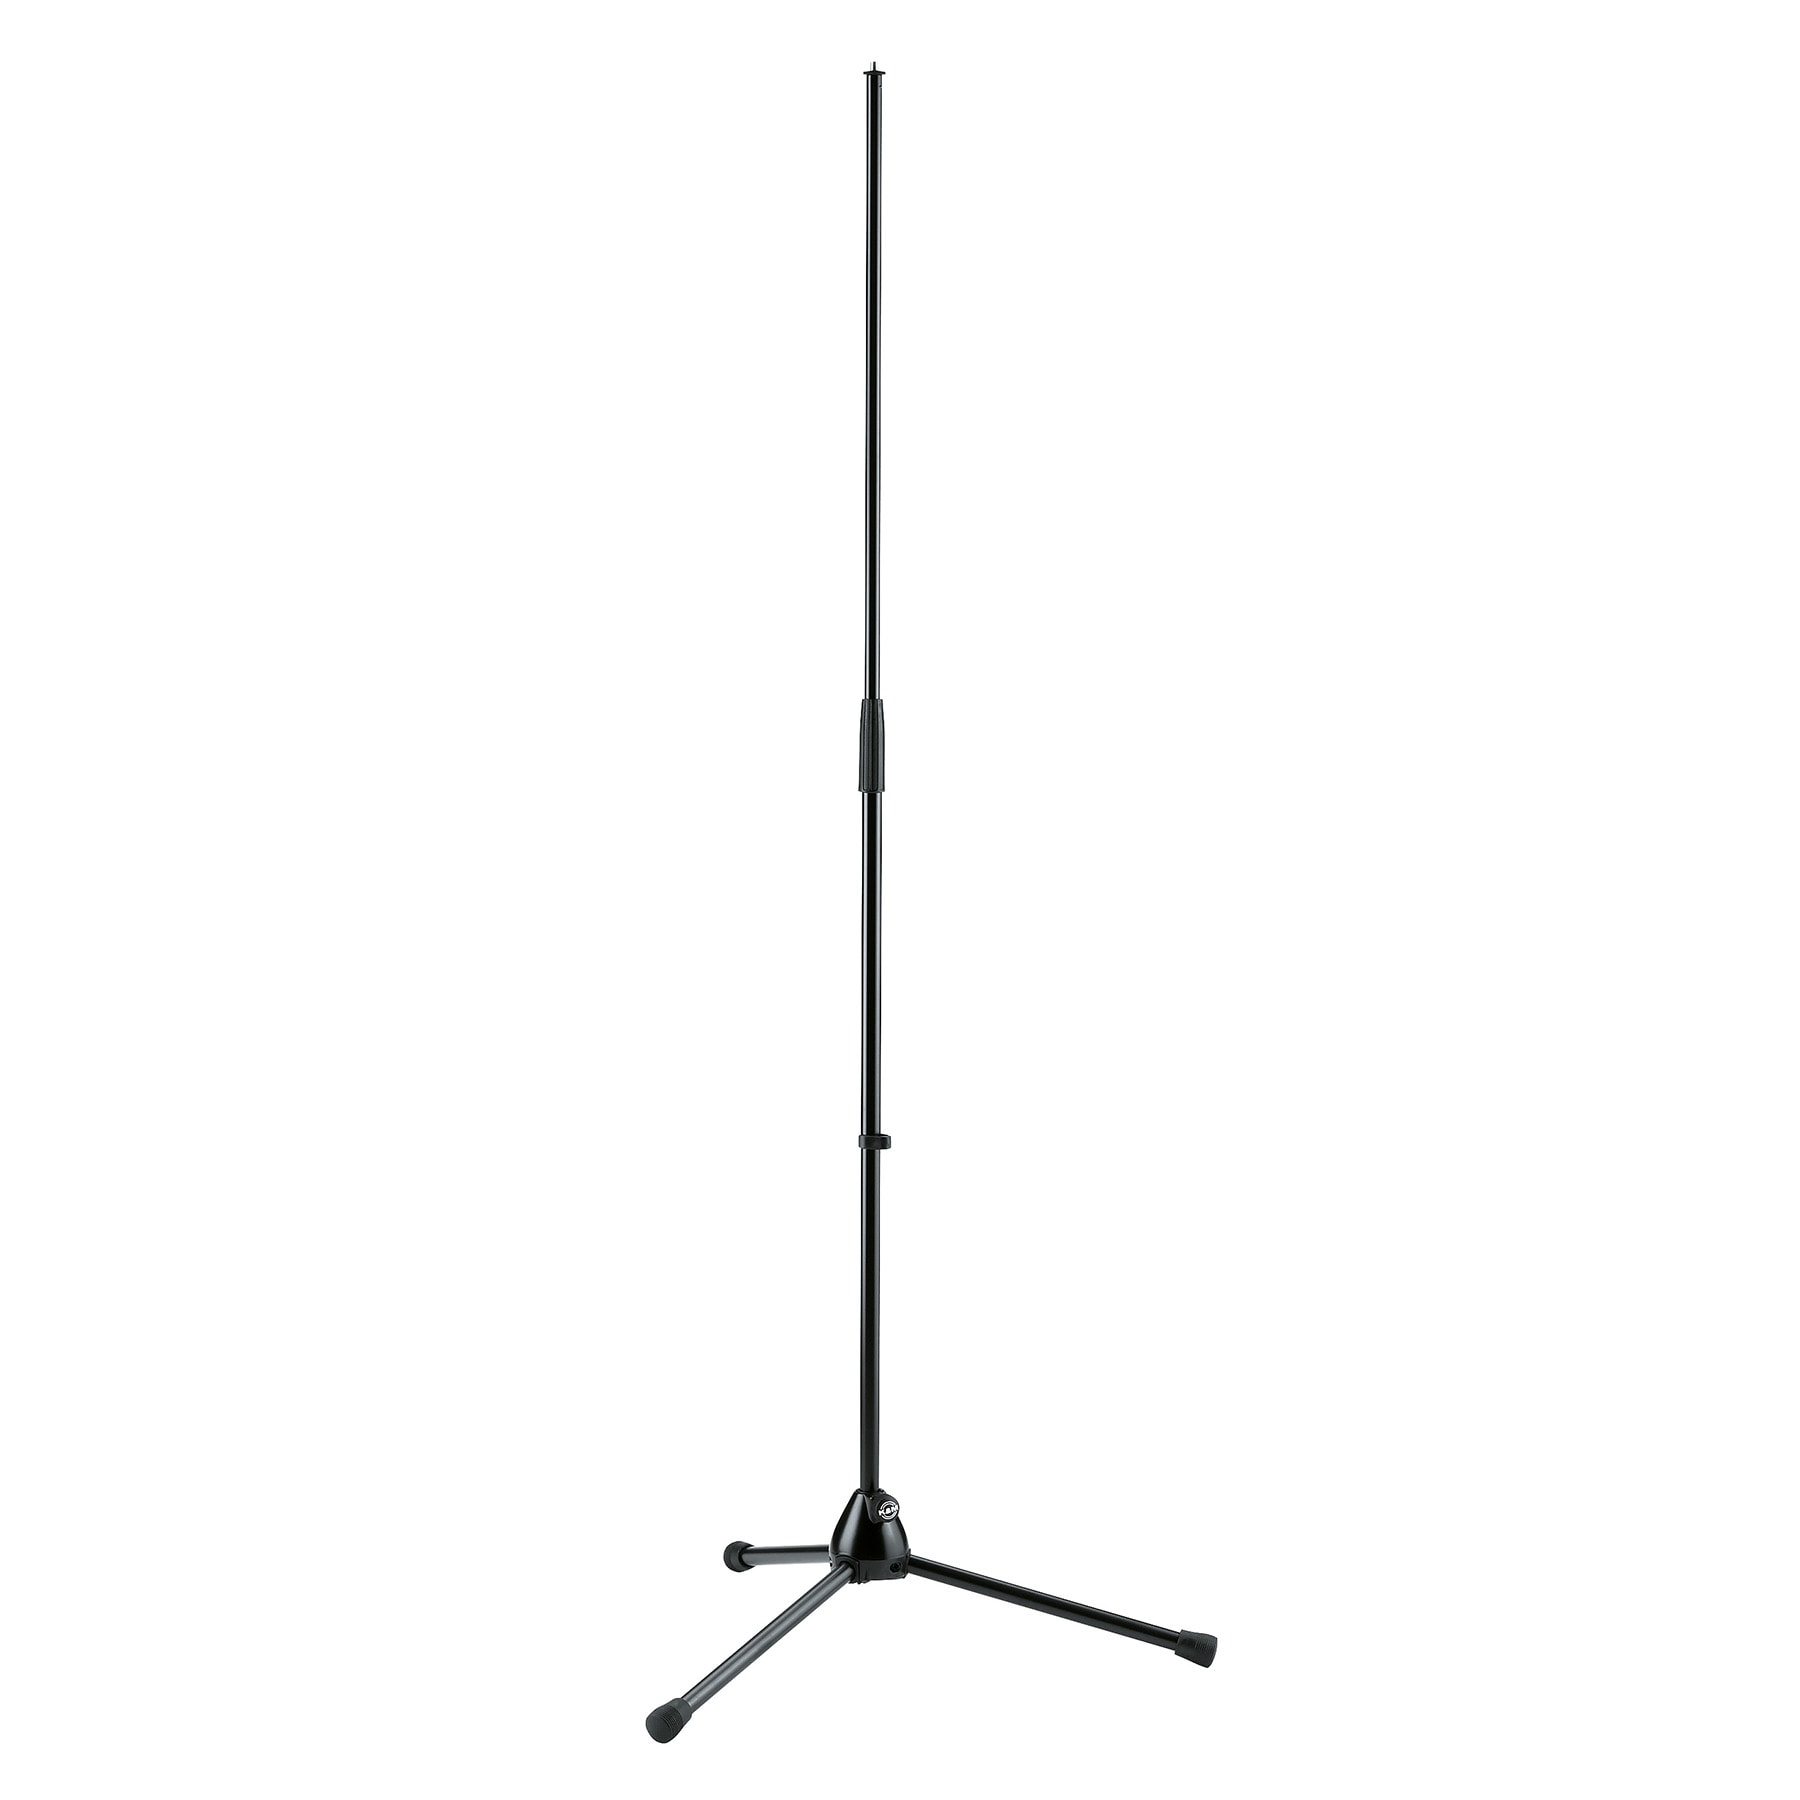 KM201A_2 - Microphone stand